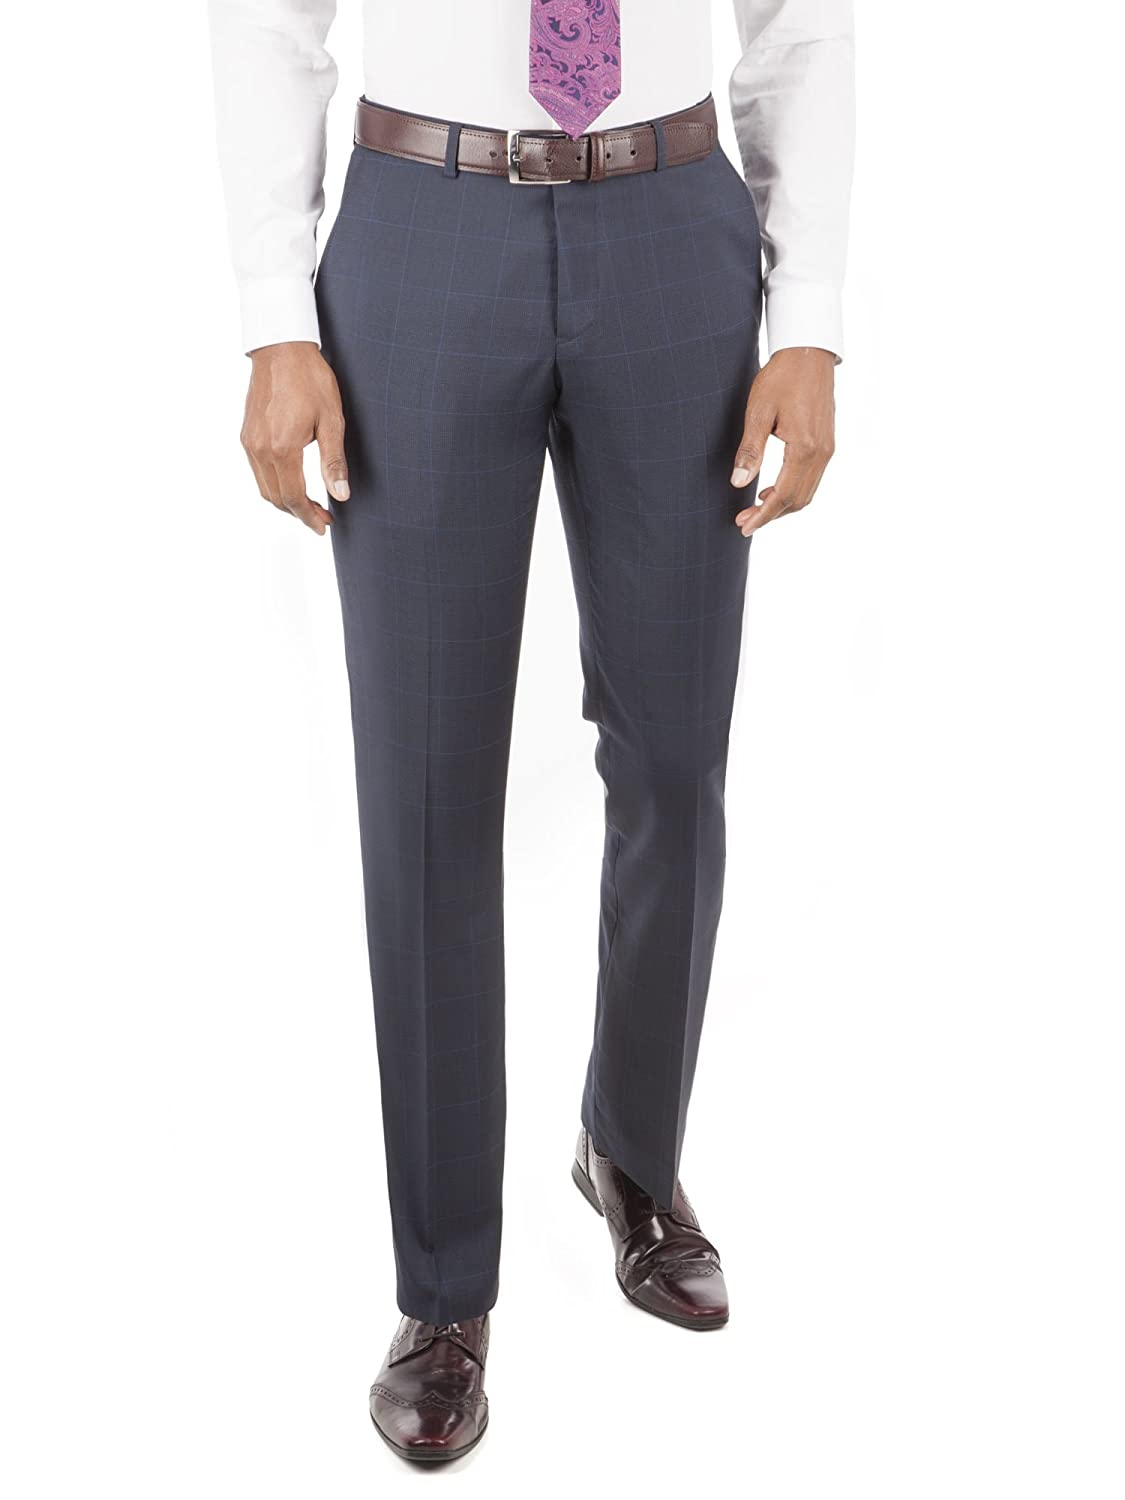 Suit Direct Alexandre Of England Navy Check Tailored Fit Suit Trouser - 0045141 Tailored Fit Mixer Trouser